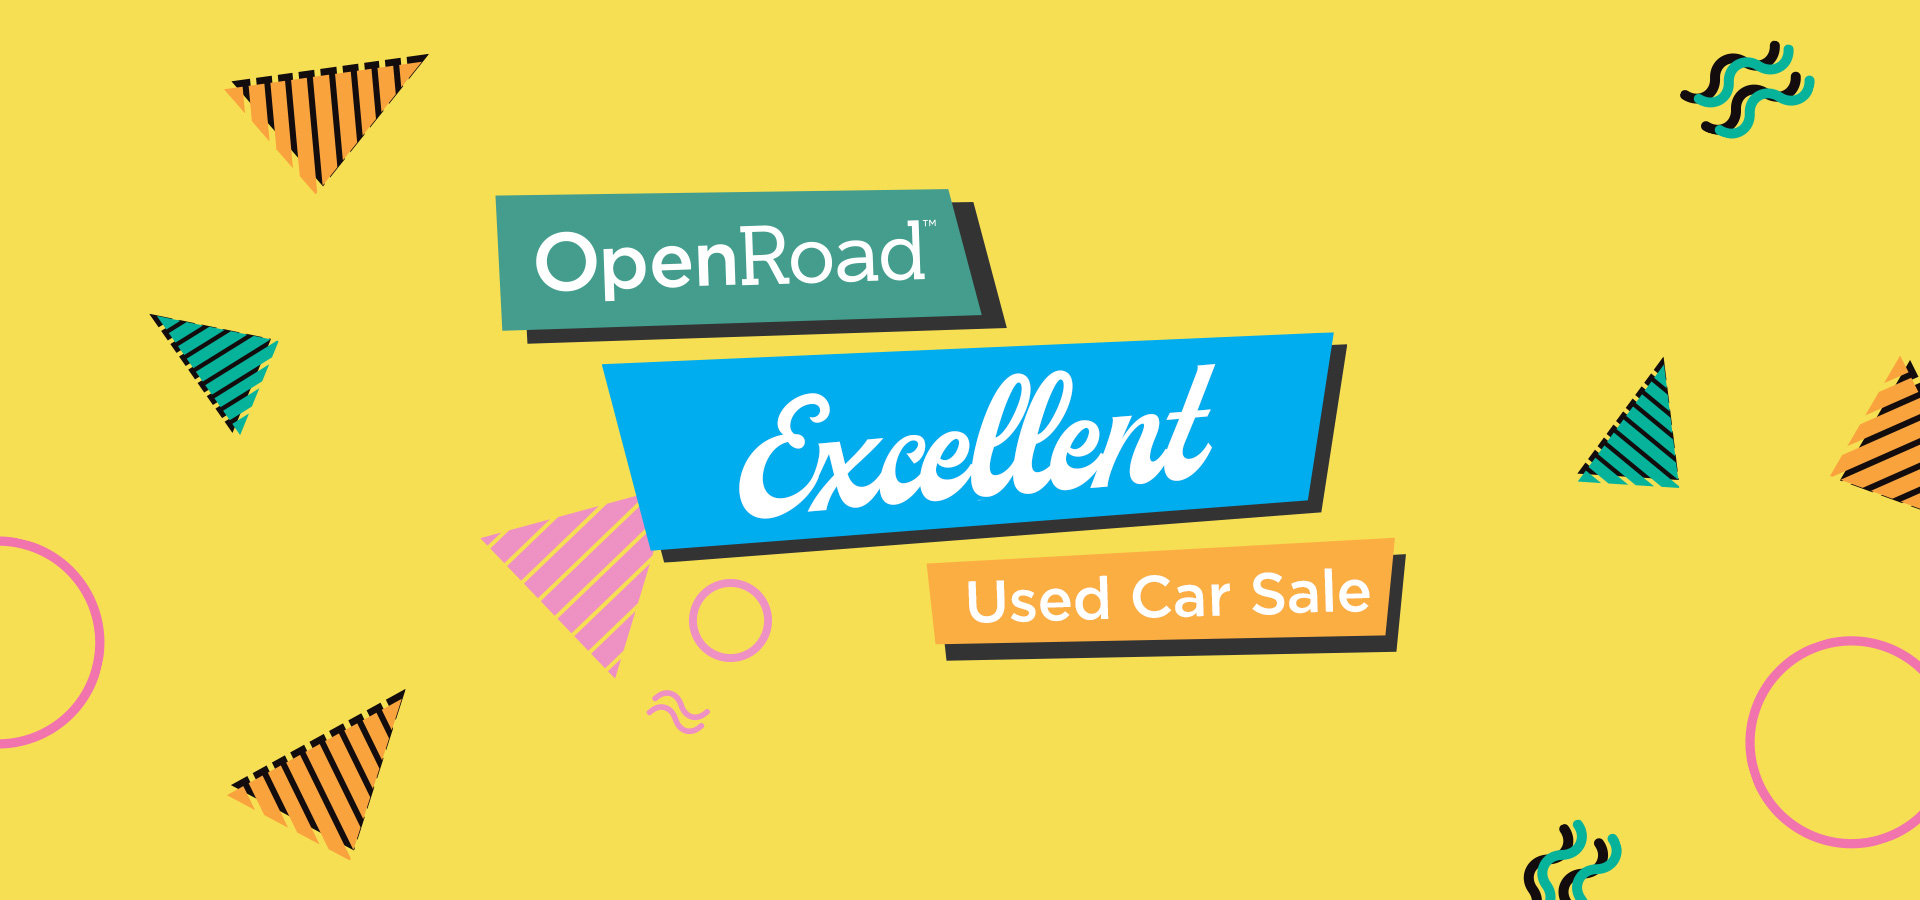 The OpenRoad Excellent Used Car Sale